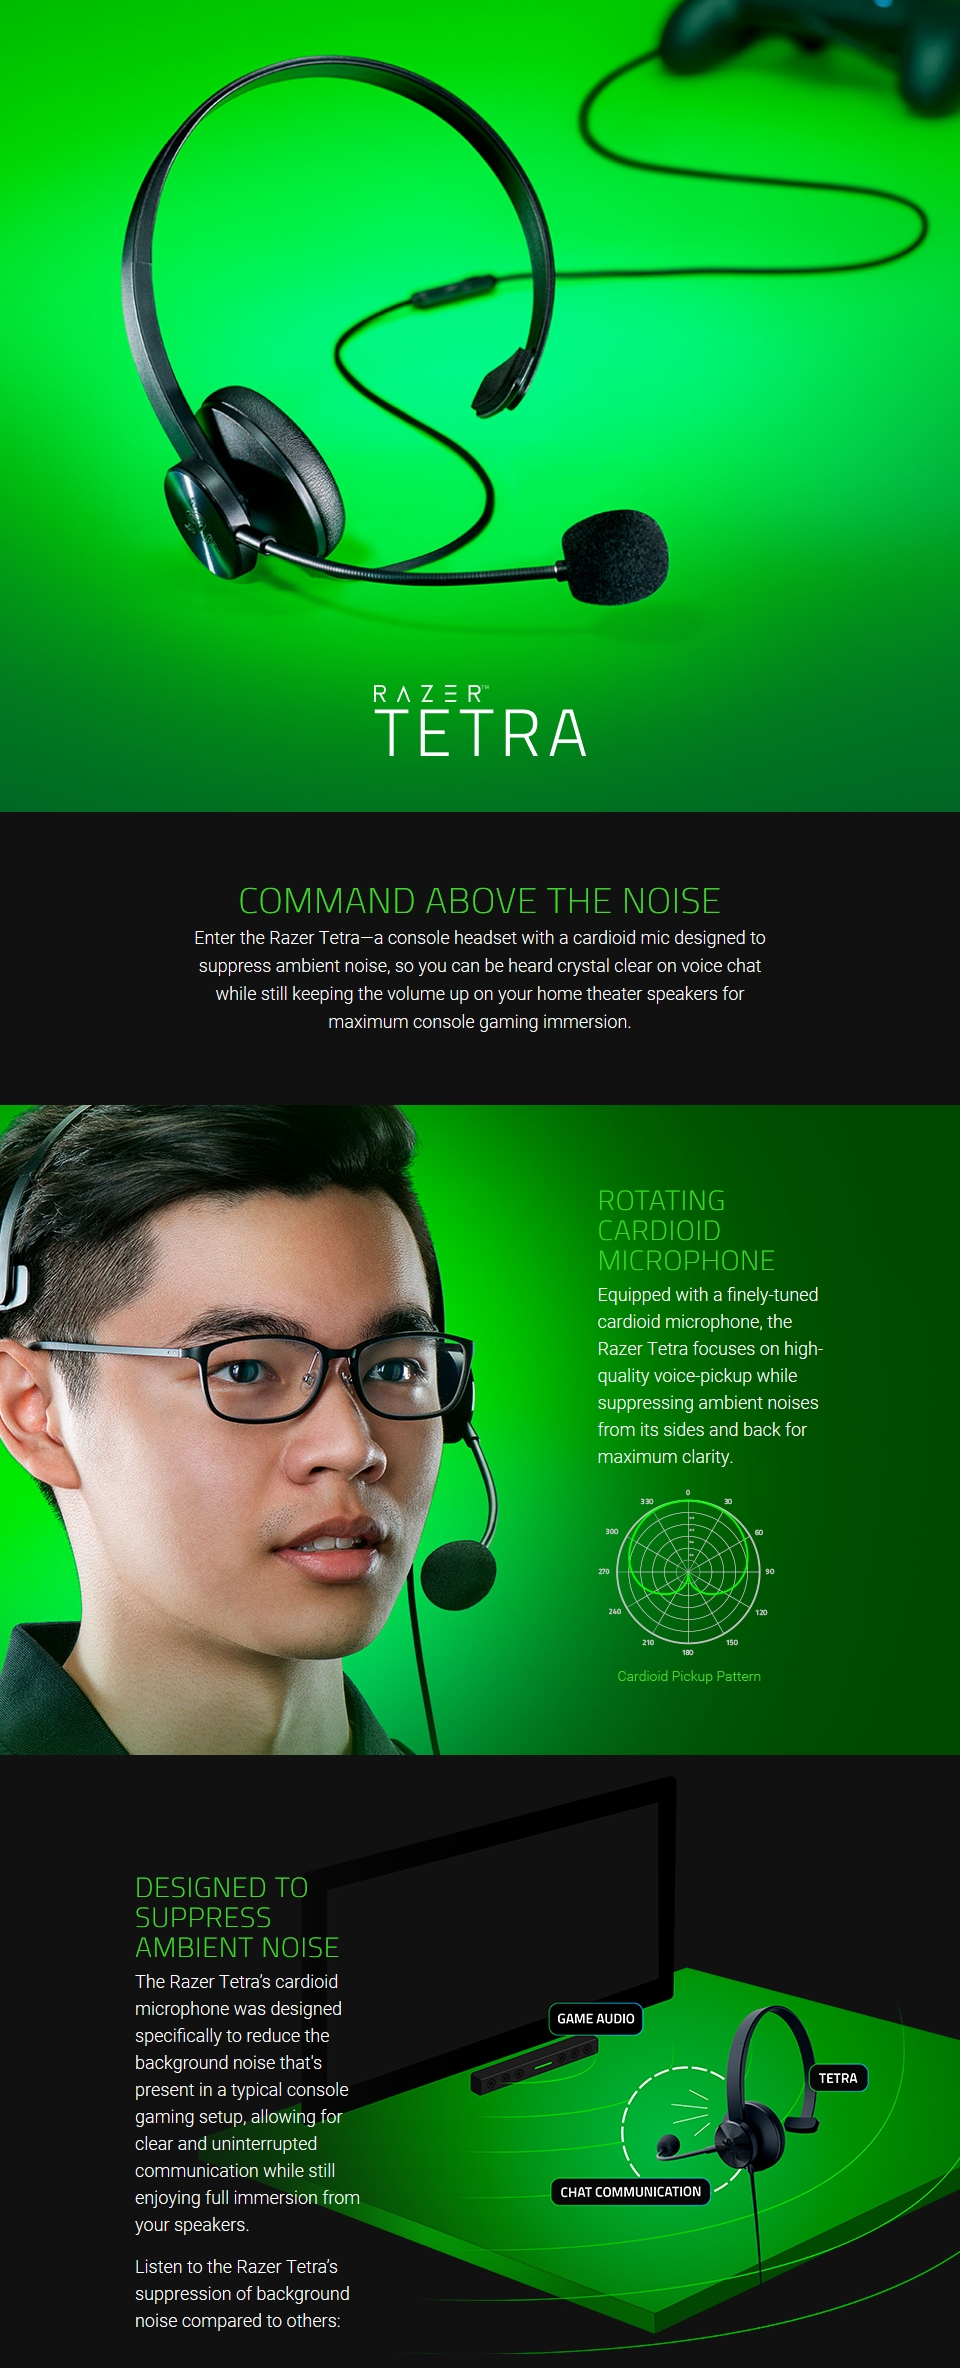 Razer Tetra Wired Console Chat Headset features